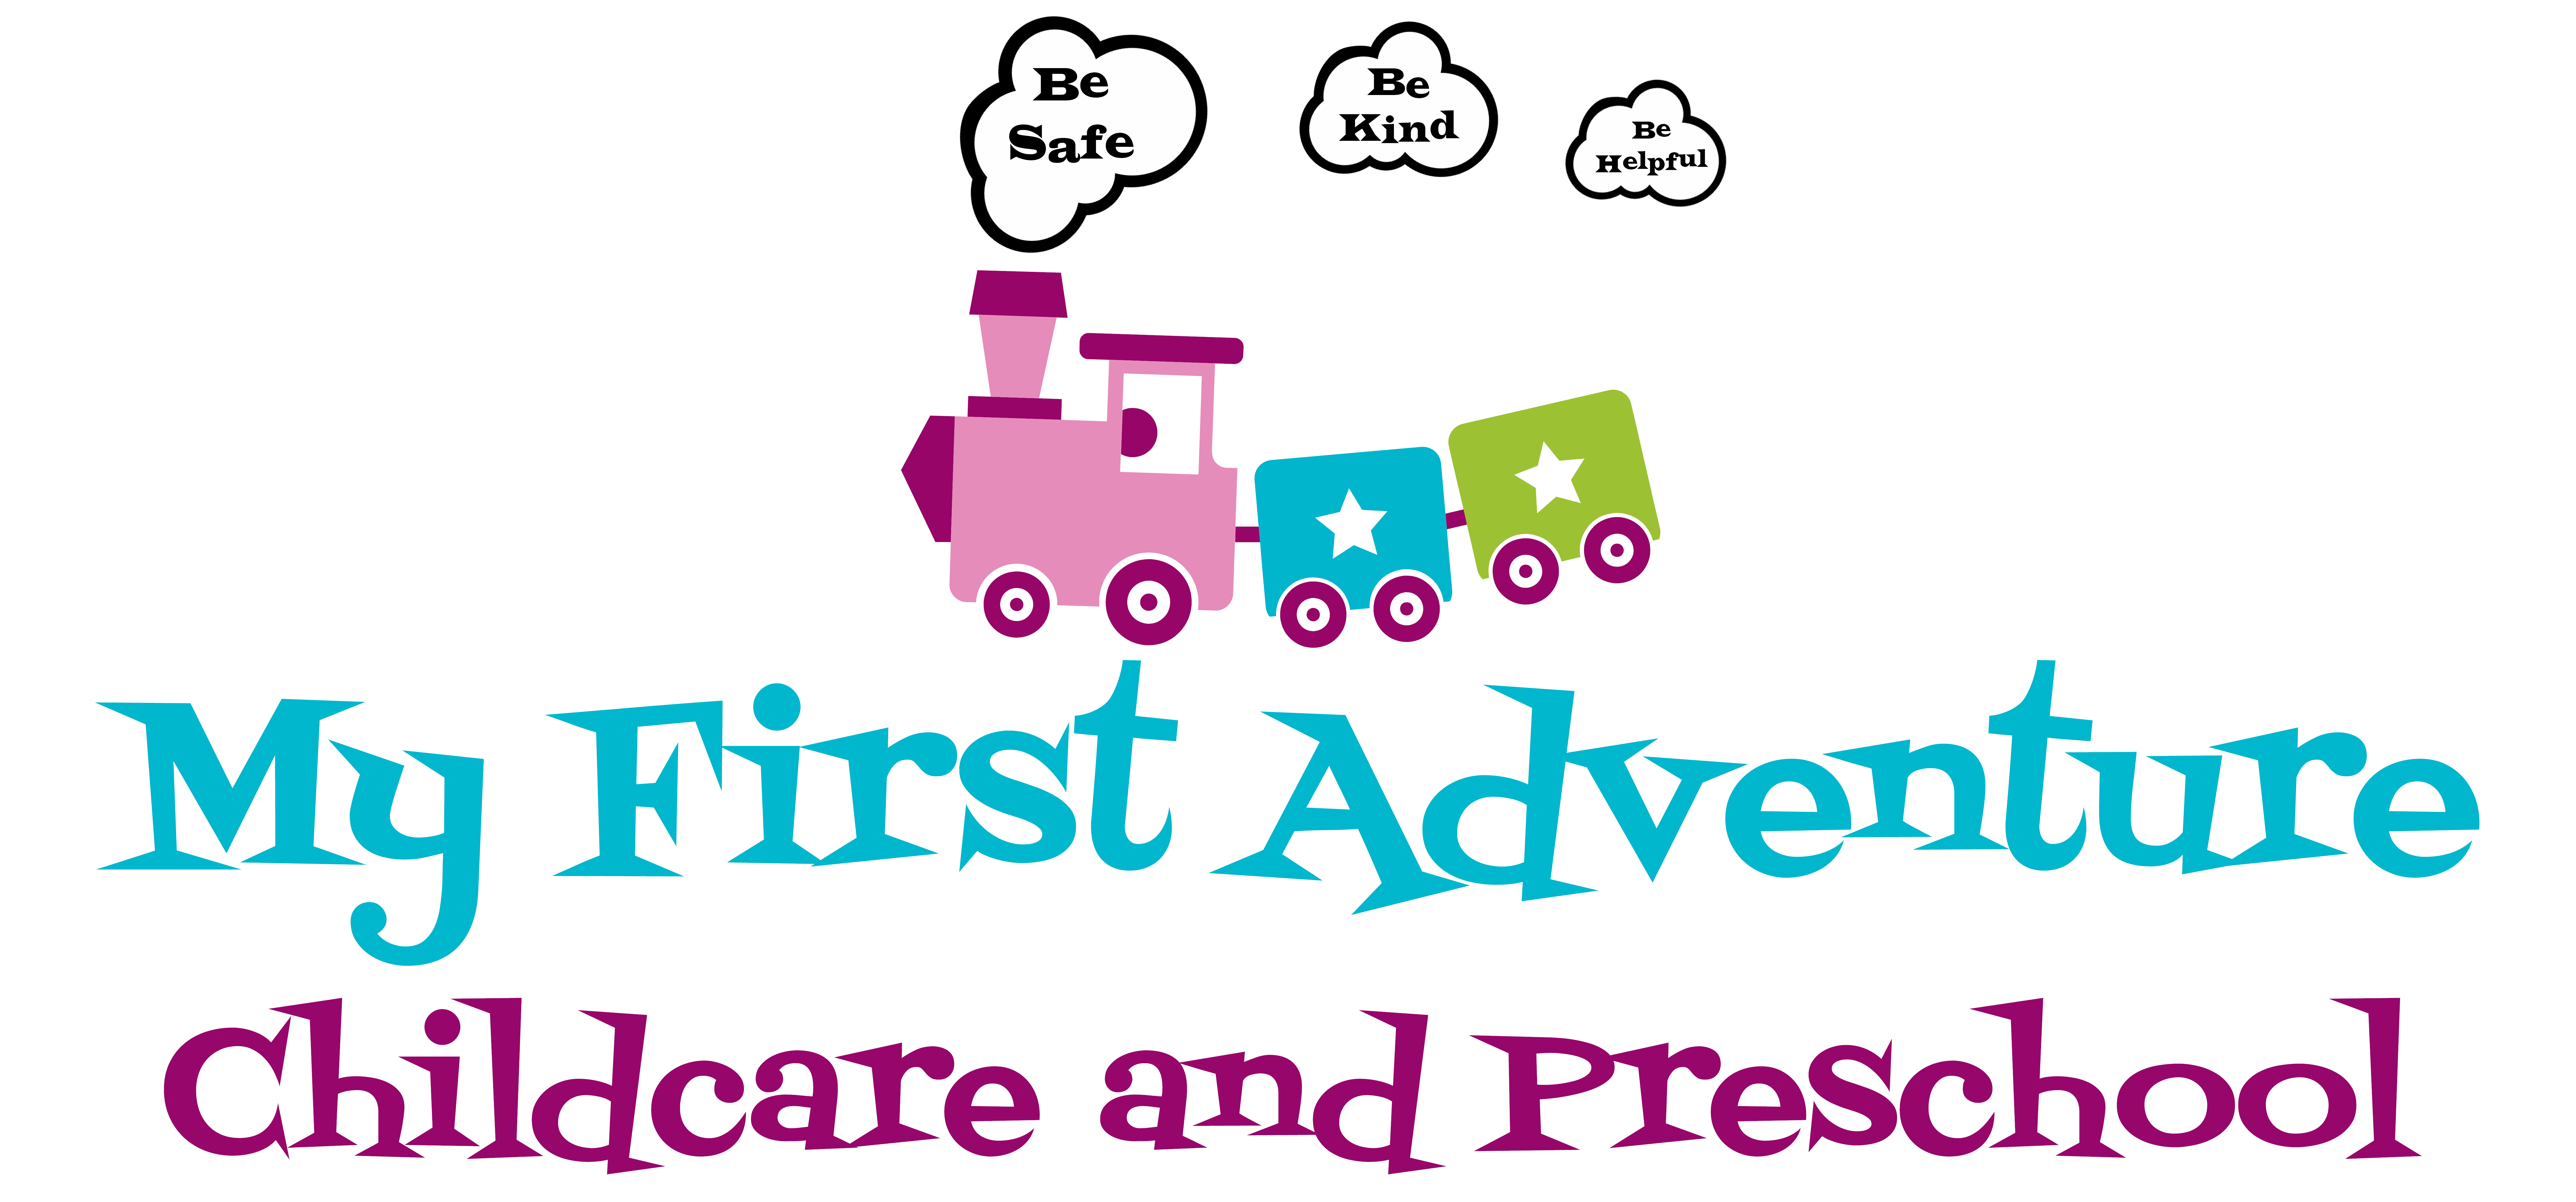 My First Adventure Child Care and Preschool